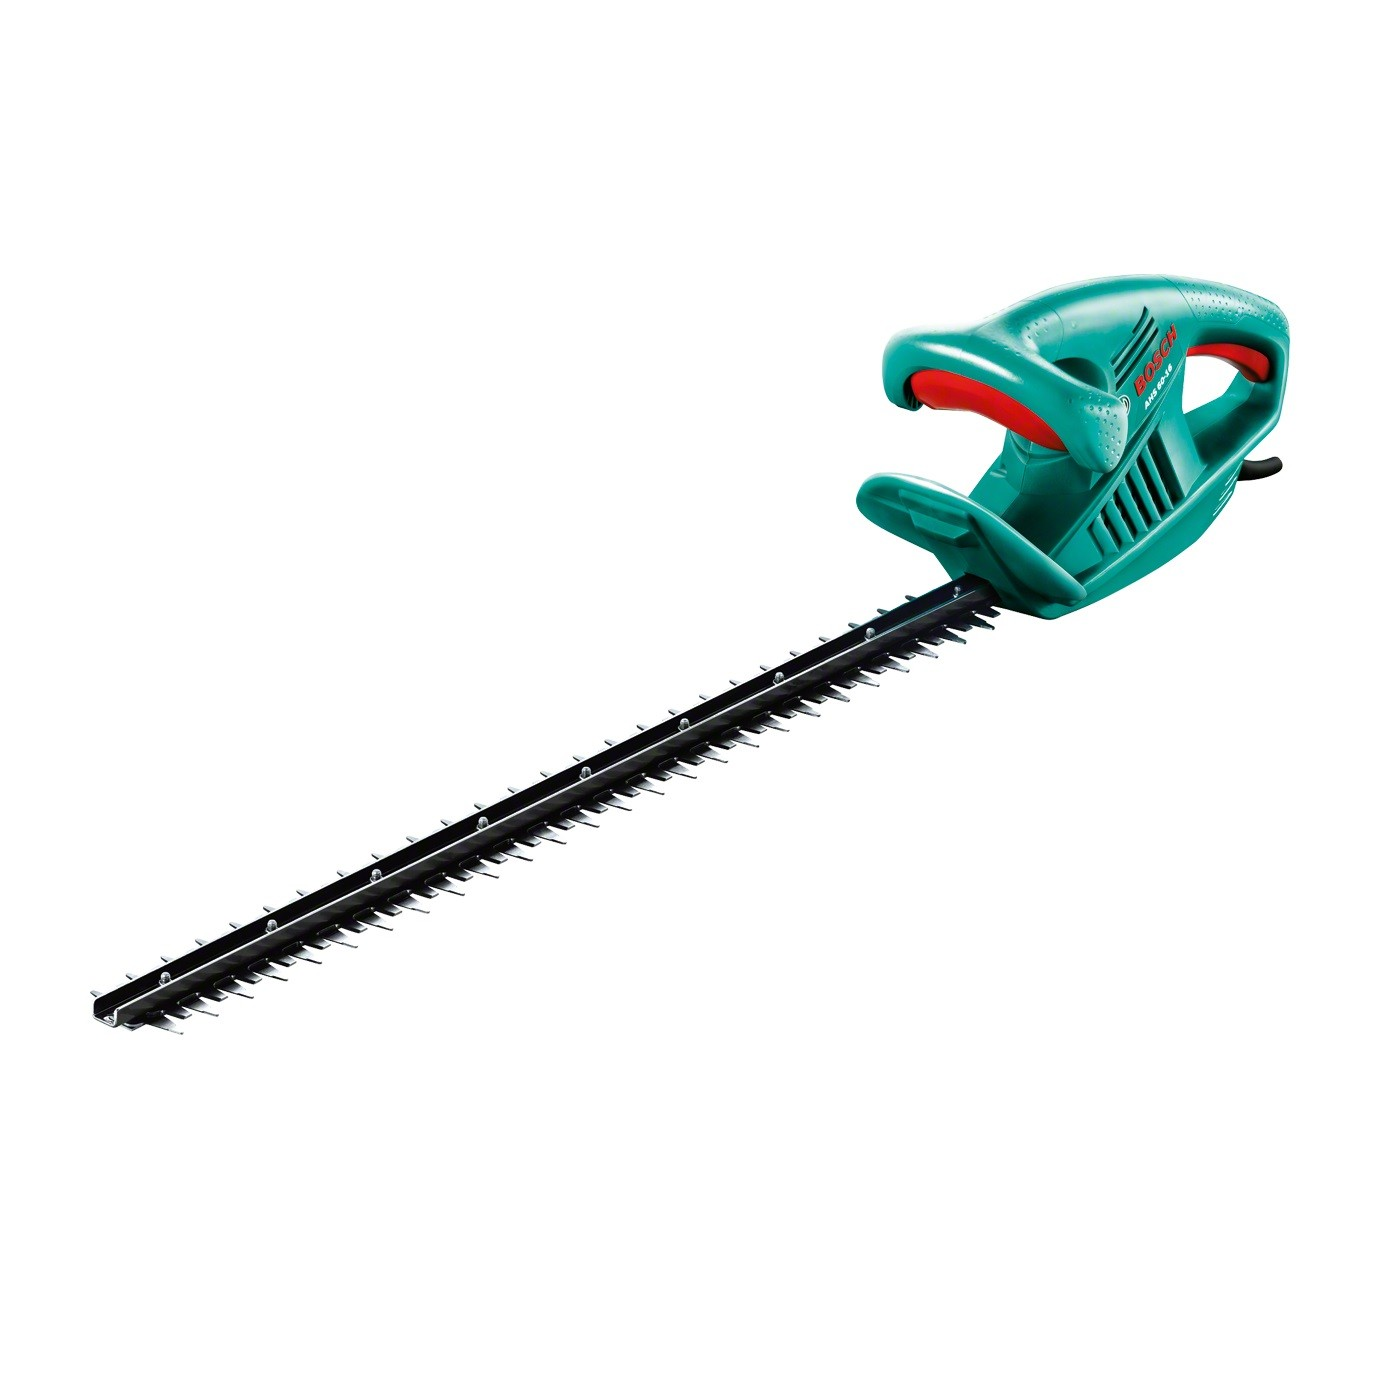 Bosch Green AHS 60-16 Corded Hedge Cutter 450W 240v 0600847D70